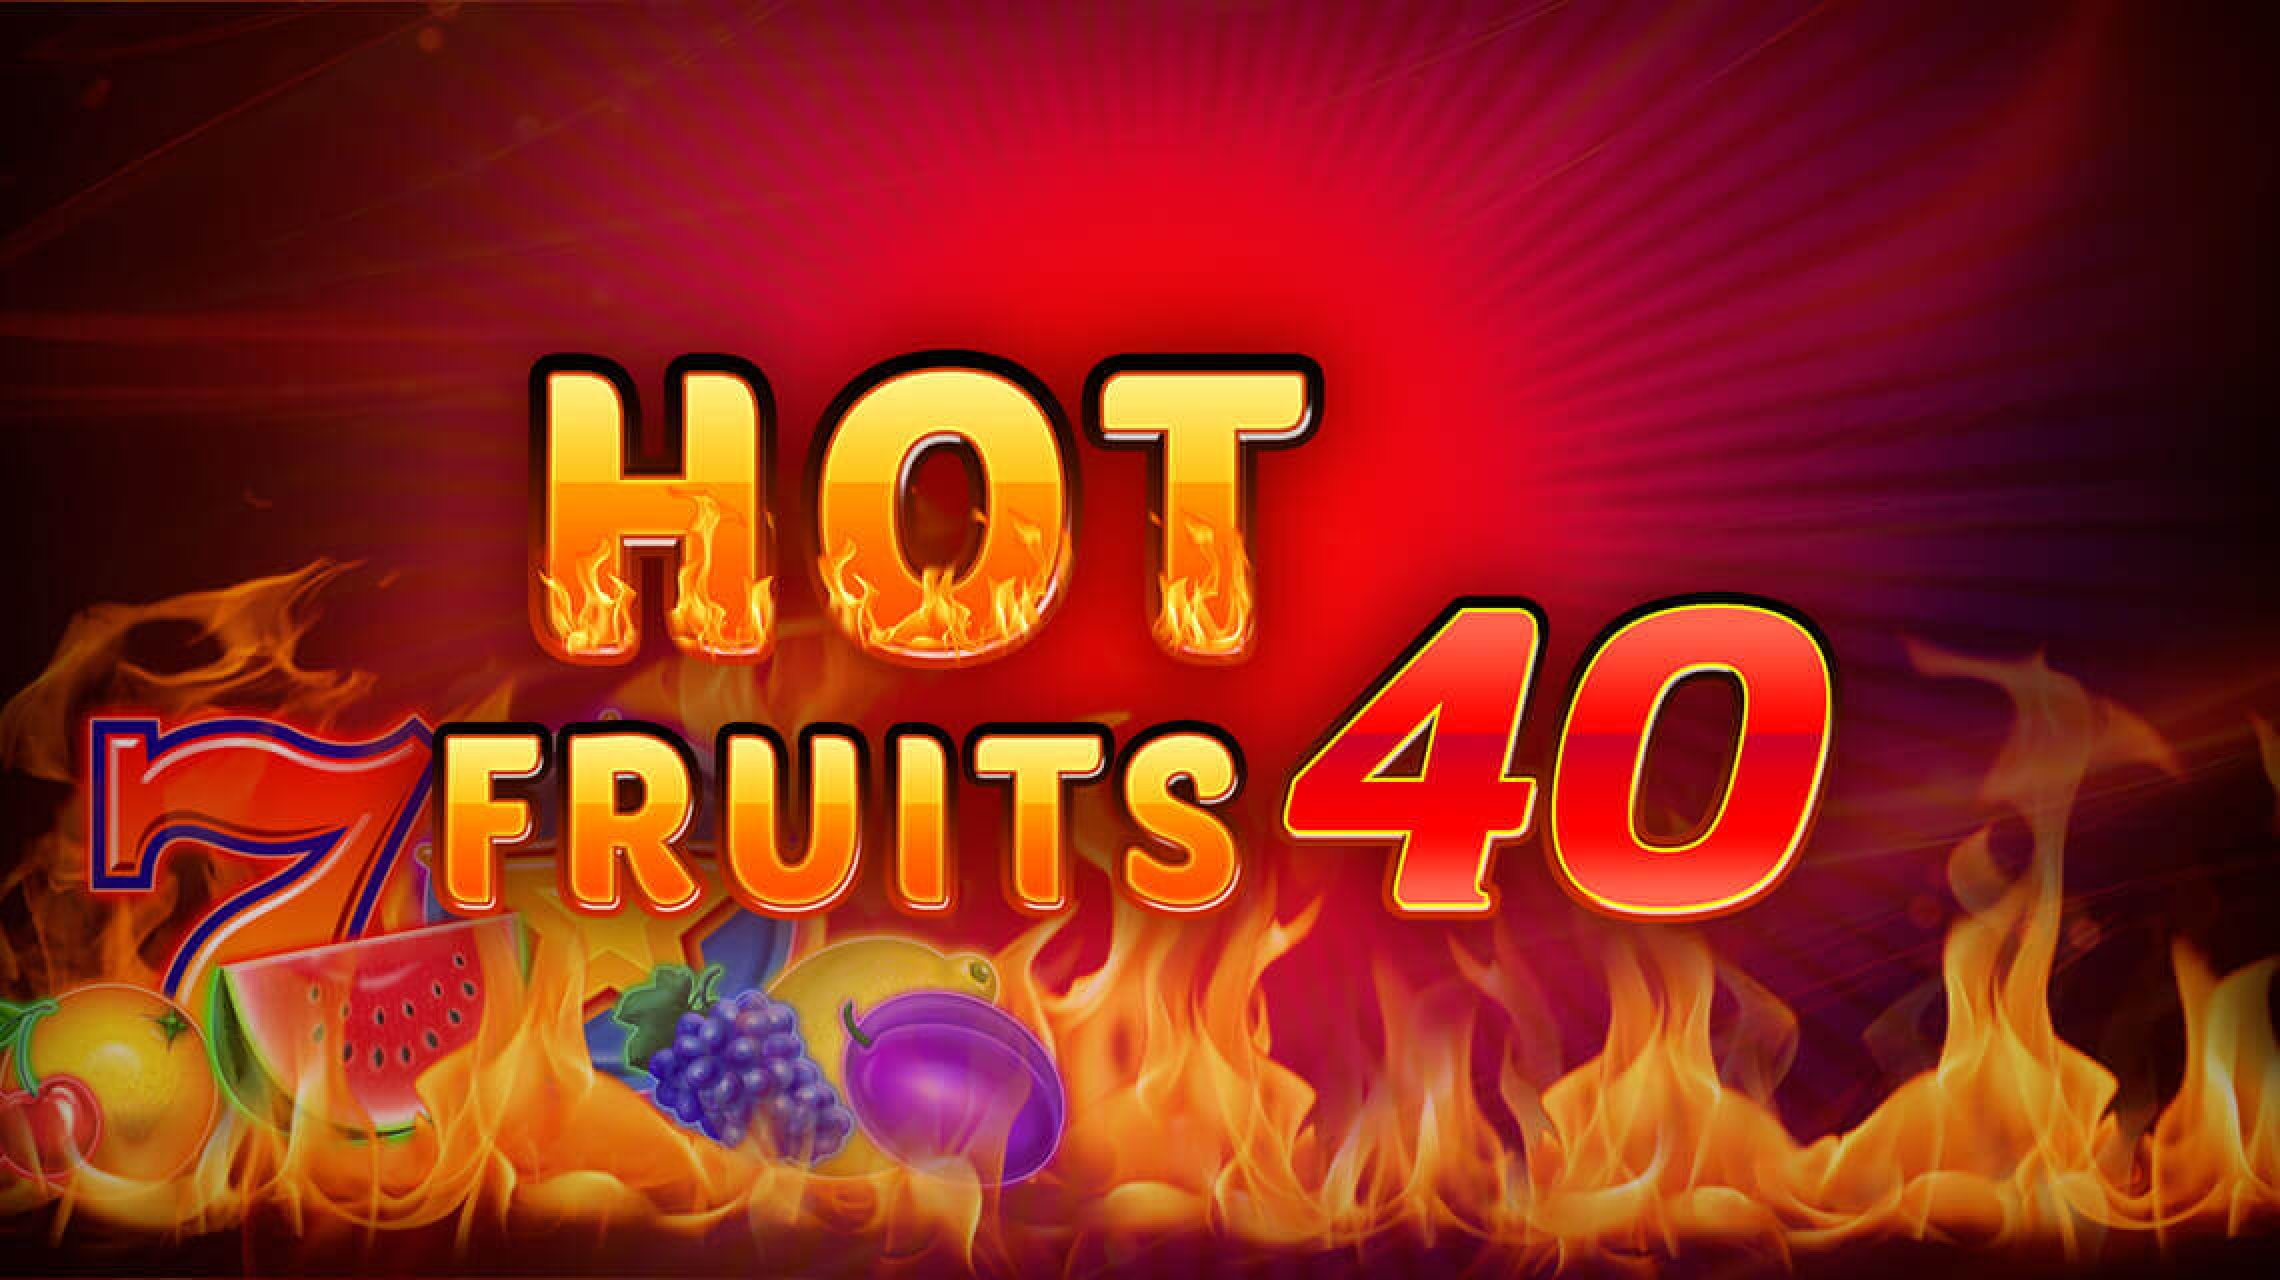 The Hot Fruits 40 Online Slot Demo Game by Amatic Industries